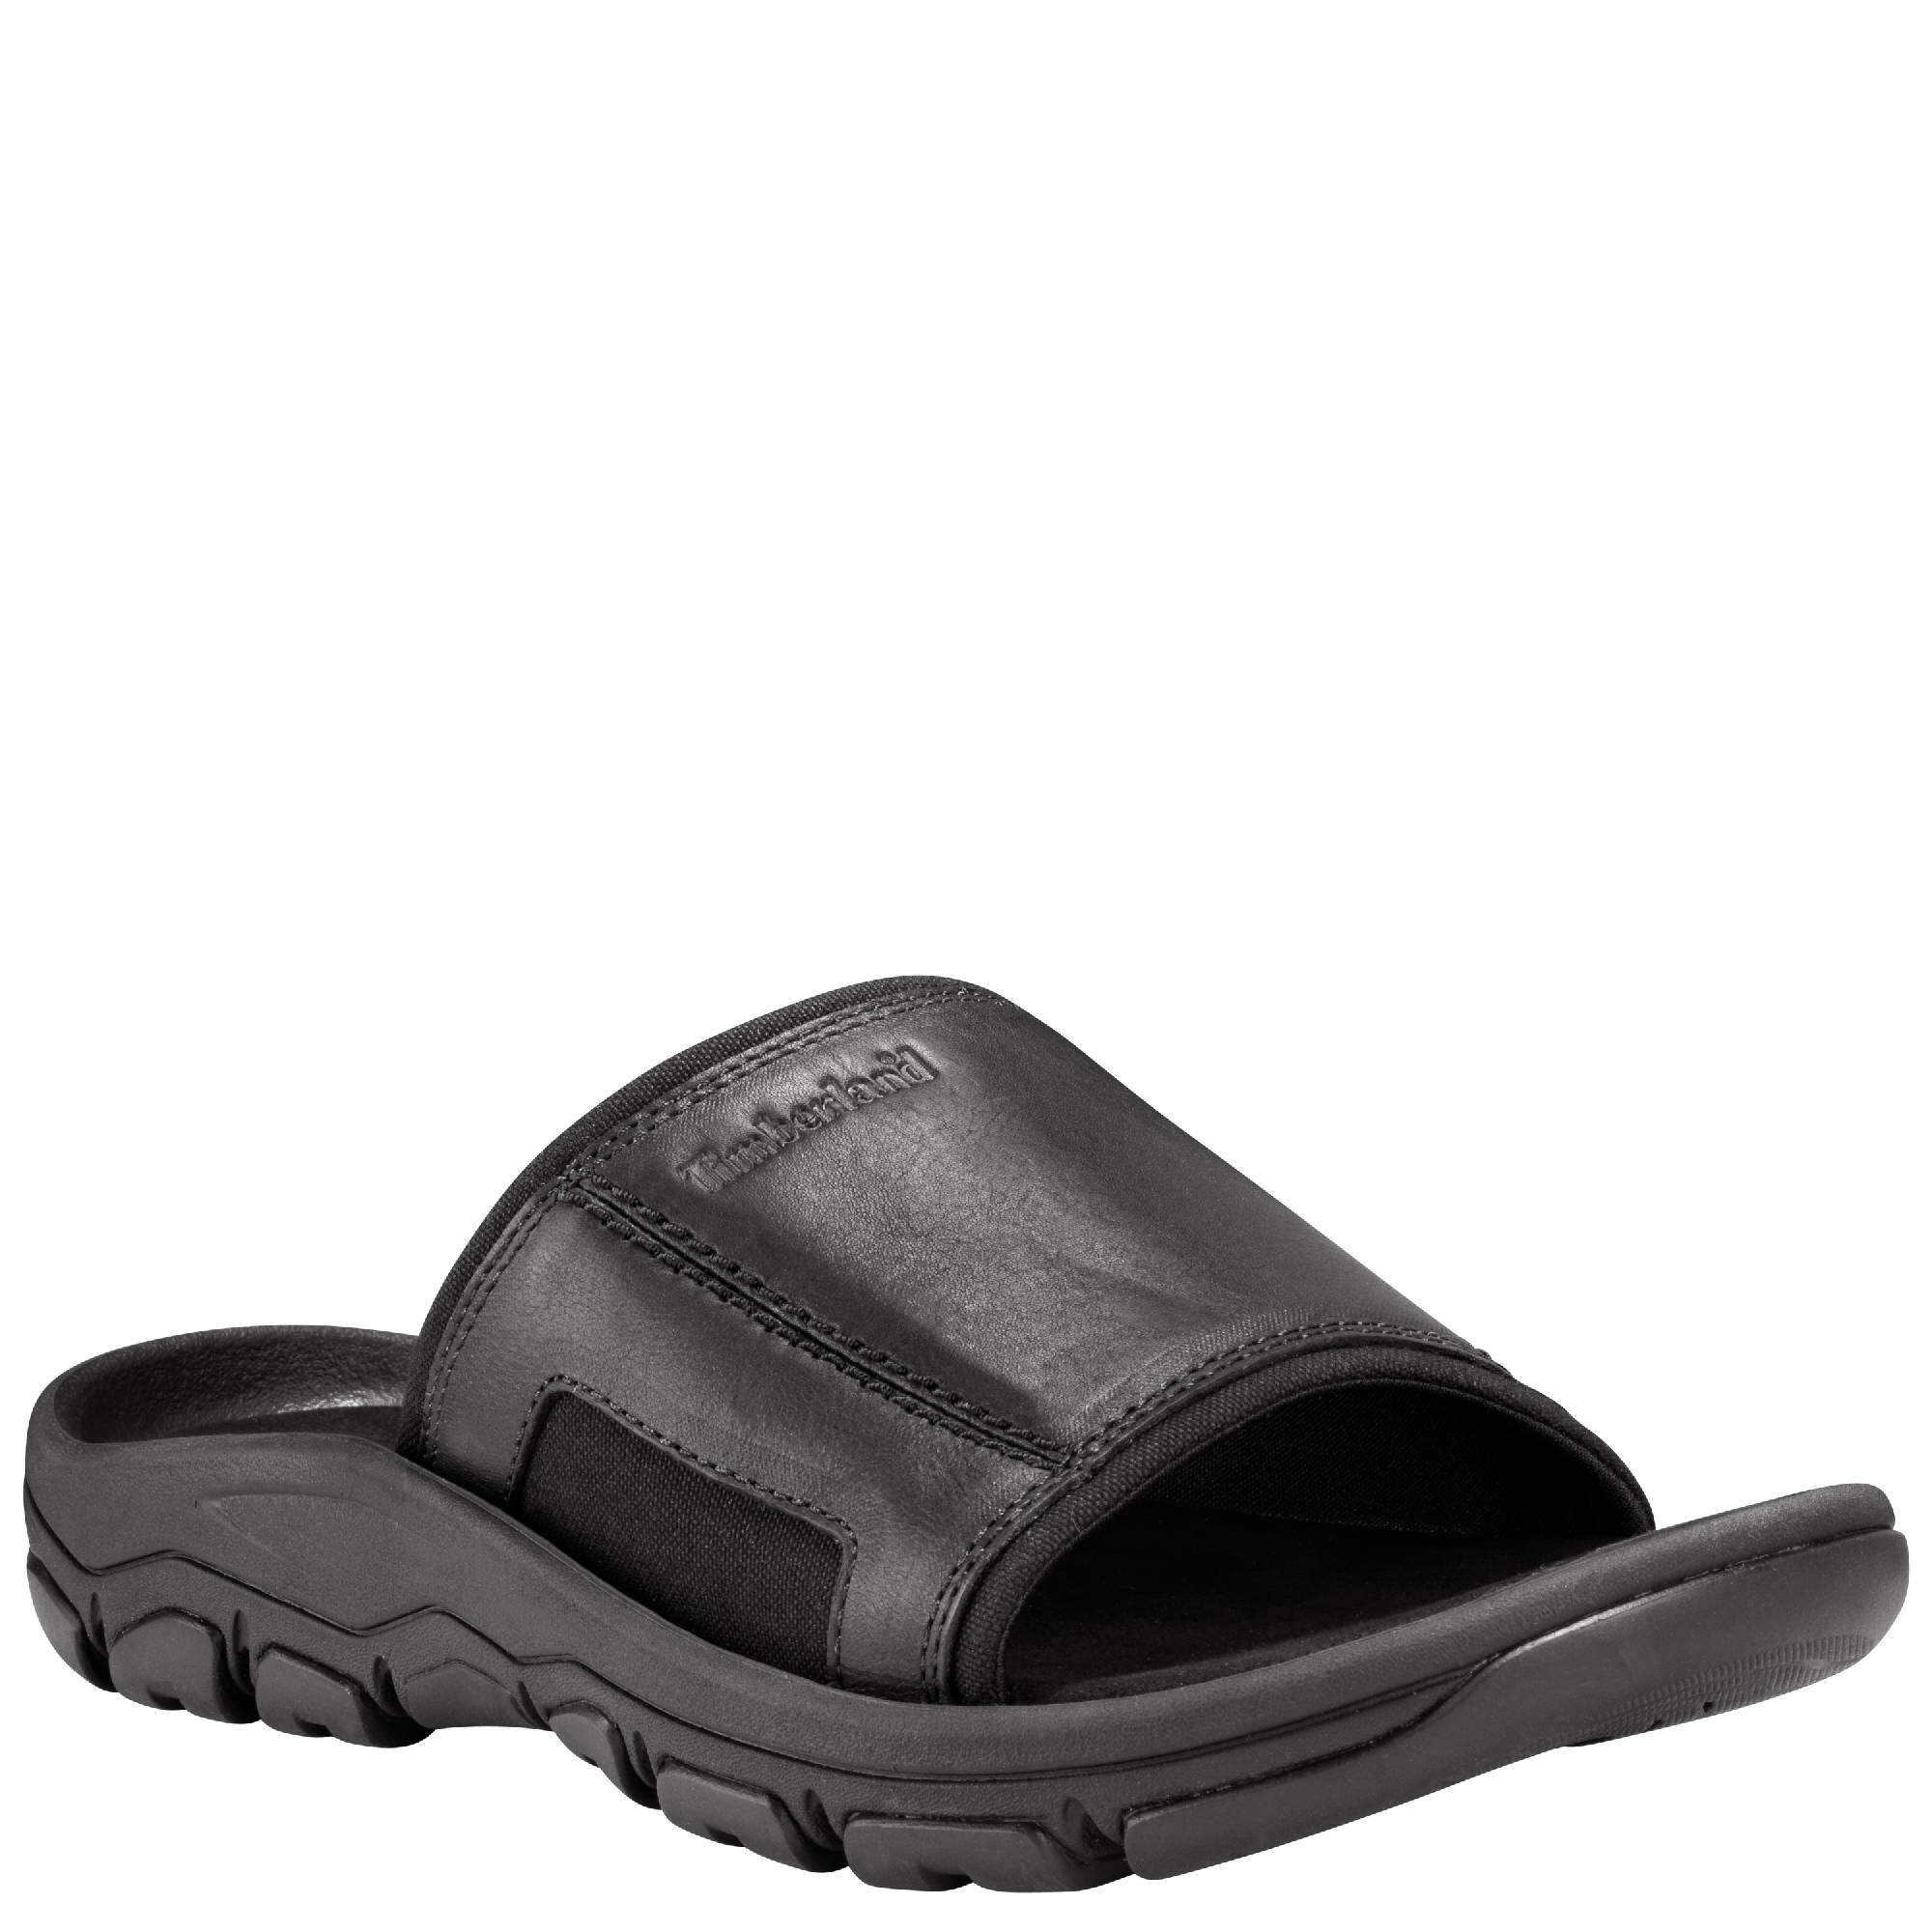 55a5bc5dca61 Timberland Men Sandals at Best Price In Malaysia